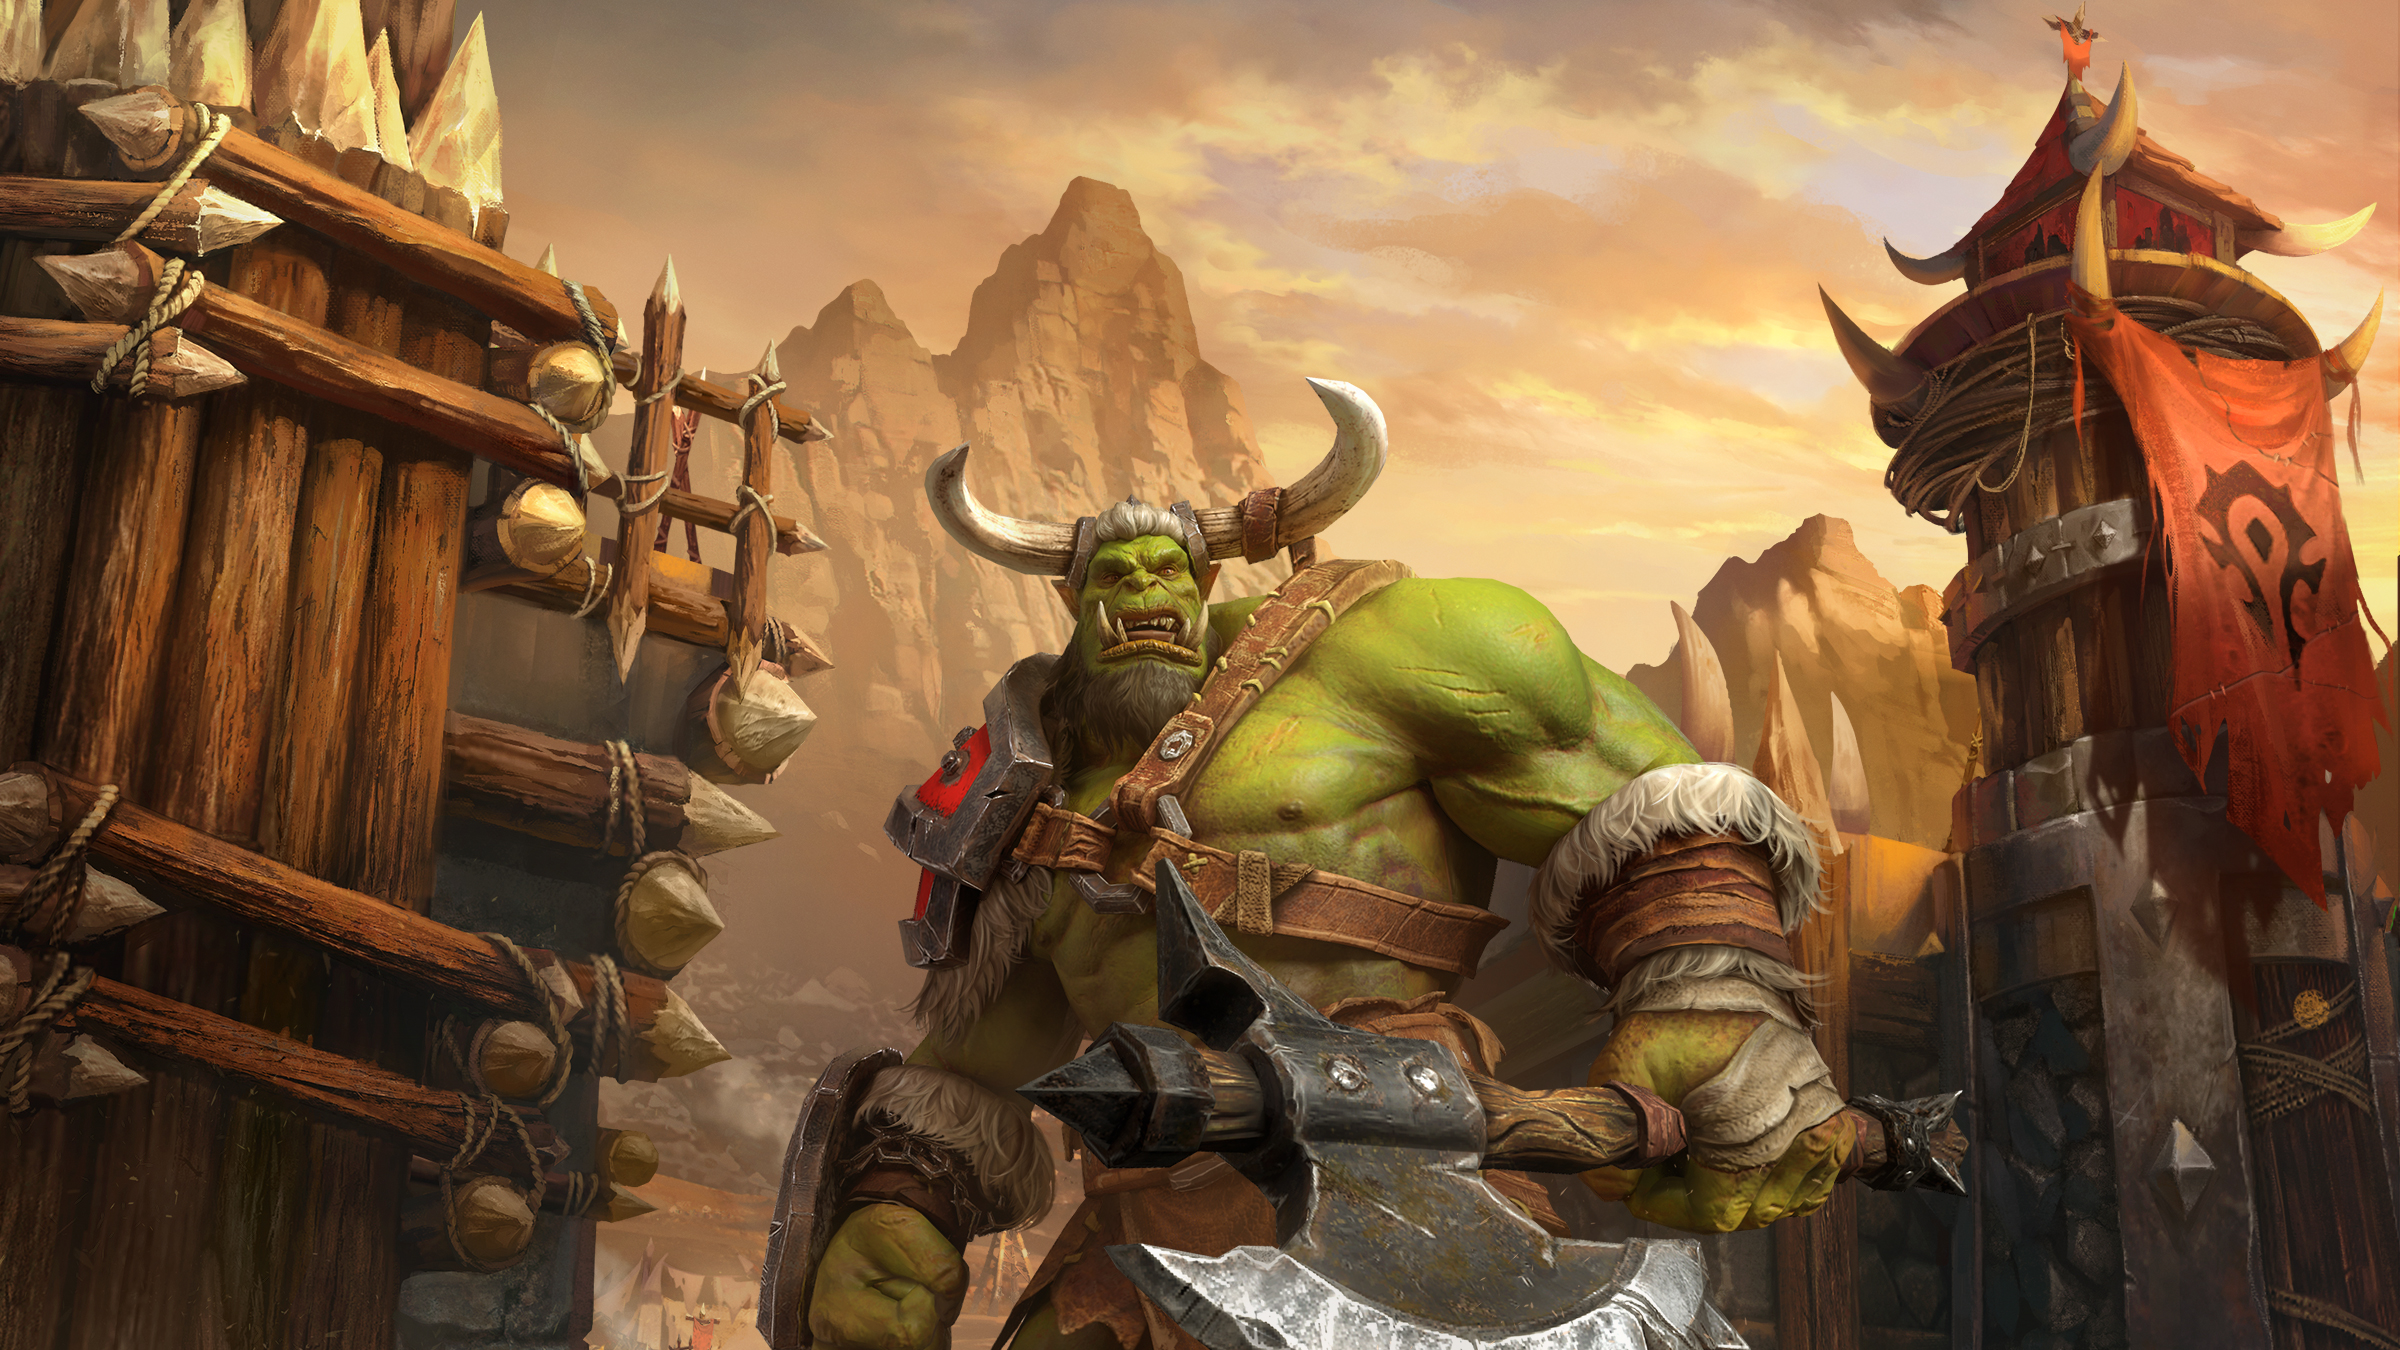 ¡Warcraft III: Reforged ya está disponible!